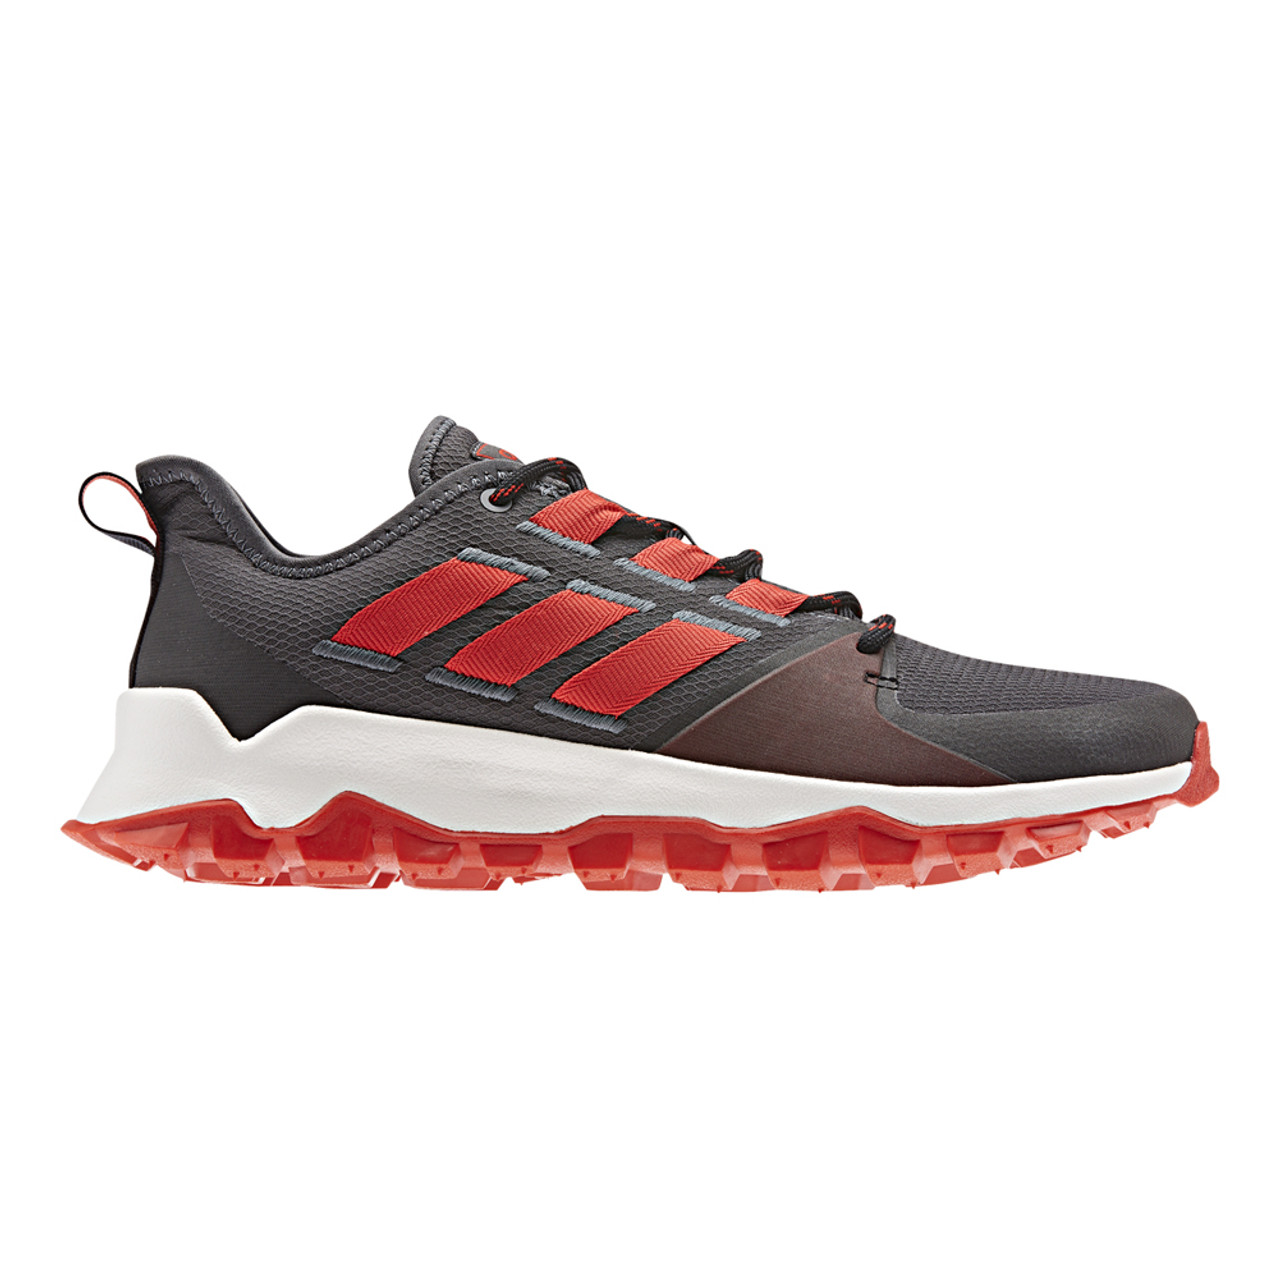 3214bf50b798 Adidas Men s Kanadia Trail Running Shoe Grey Red - Shop now   Shoolu.com